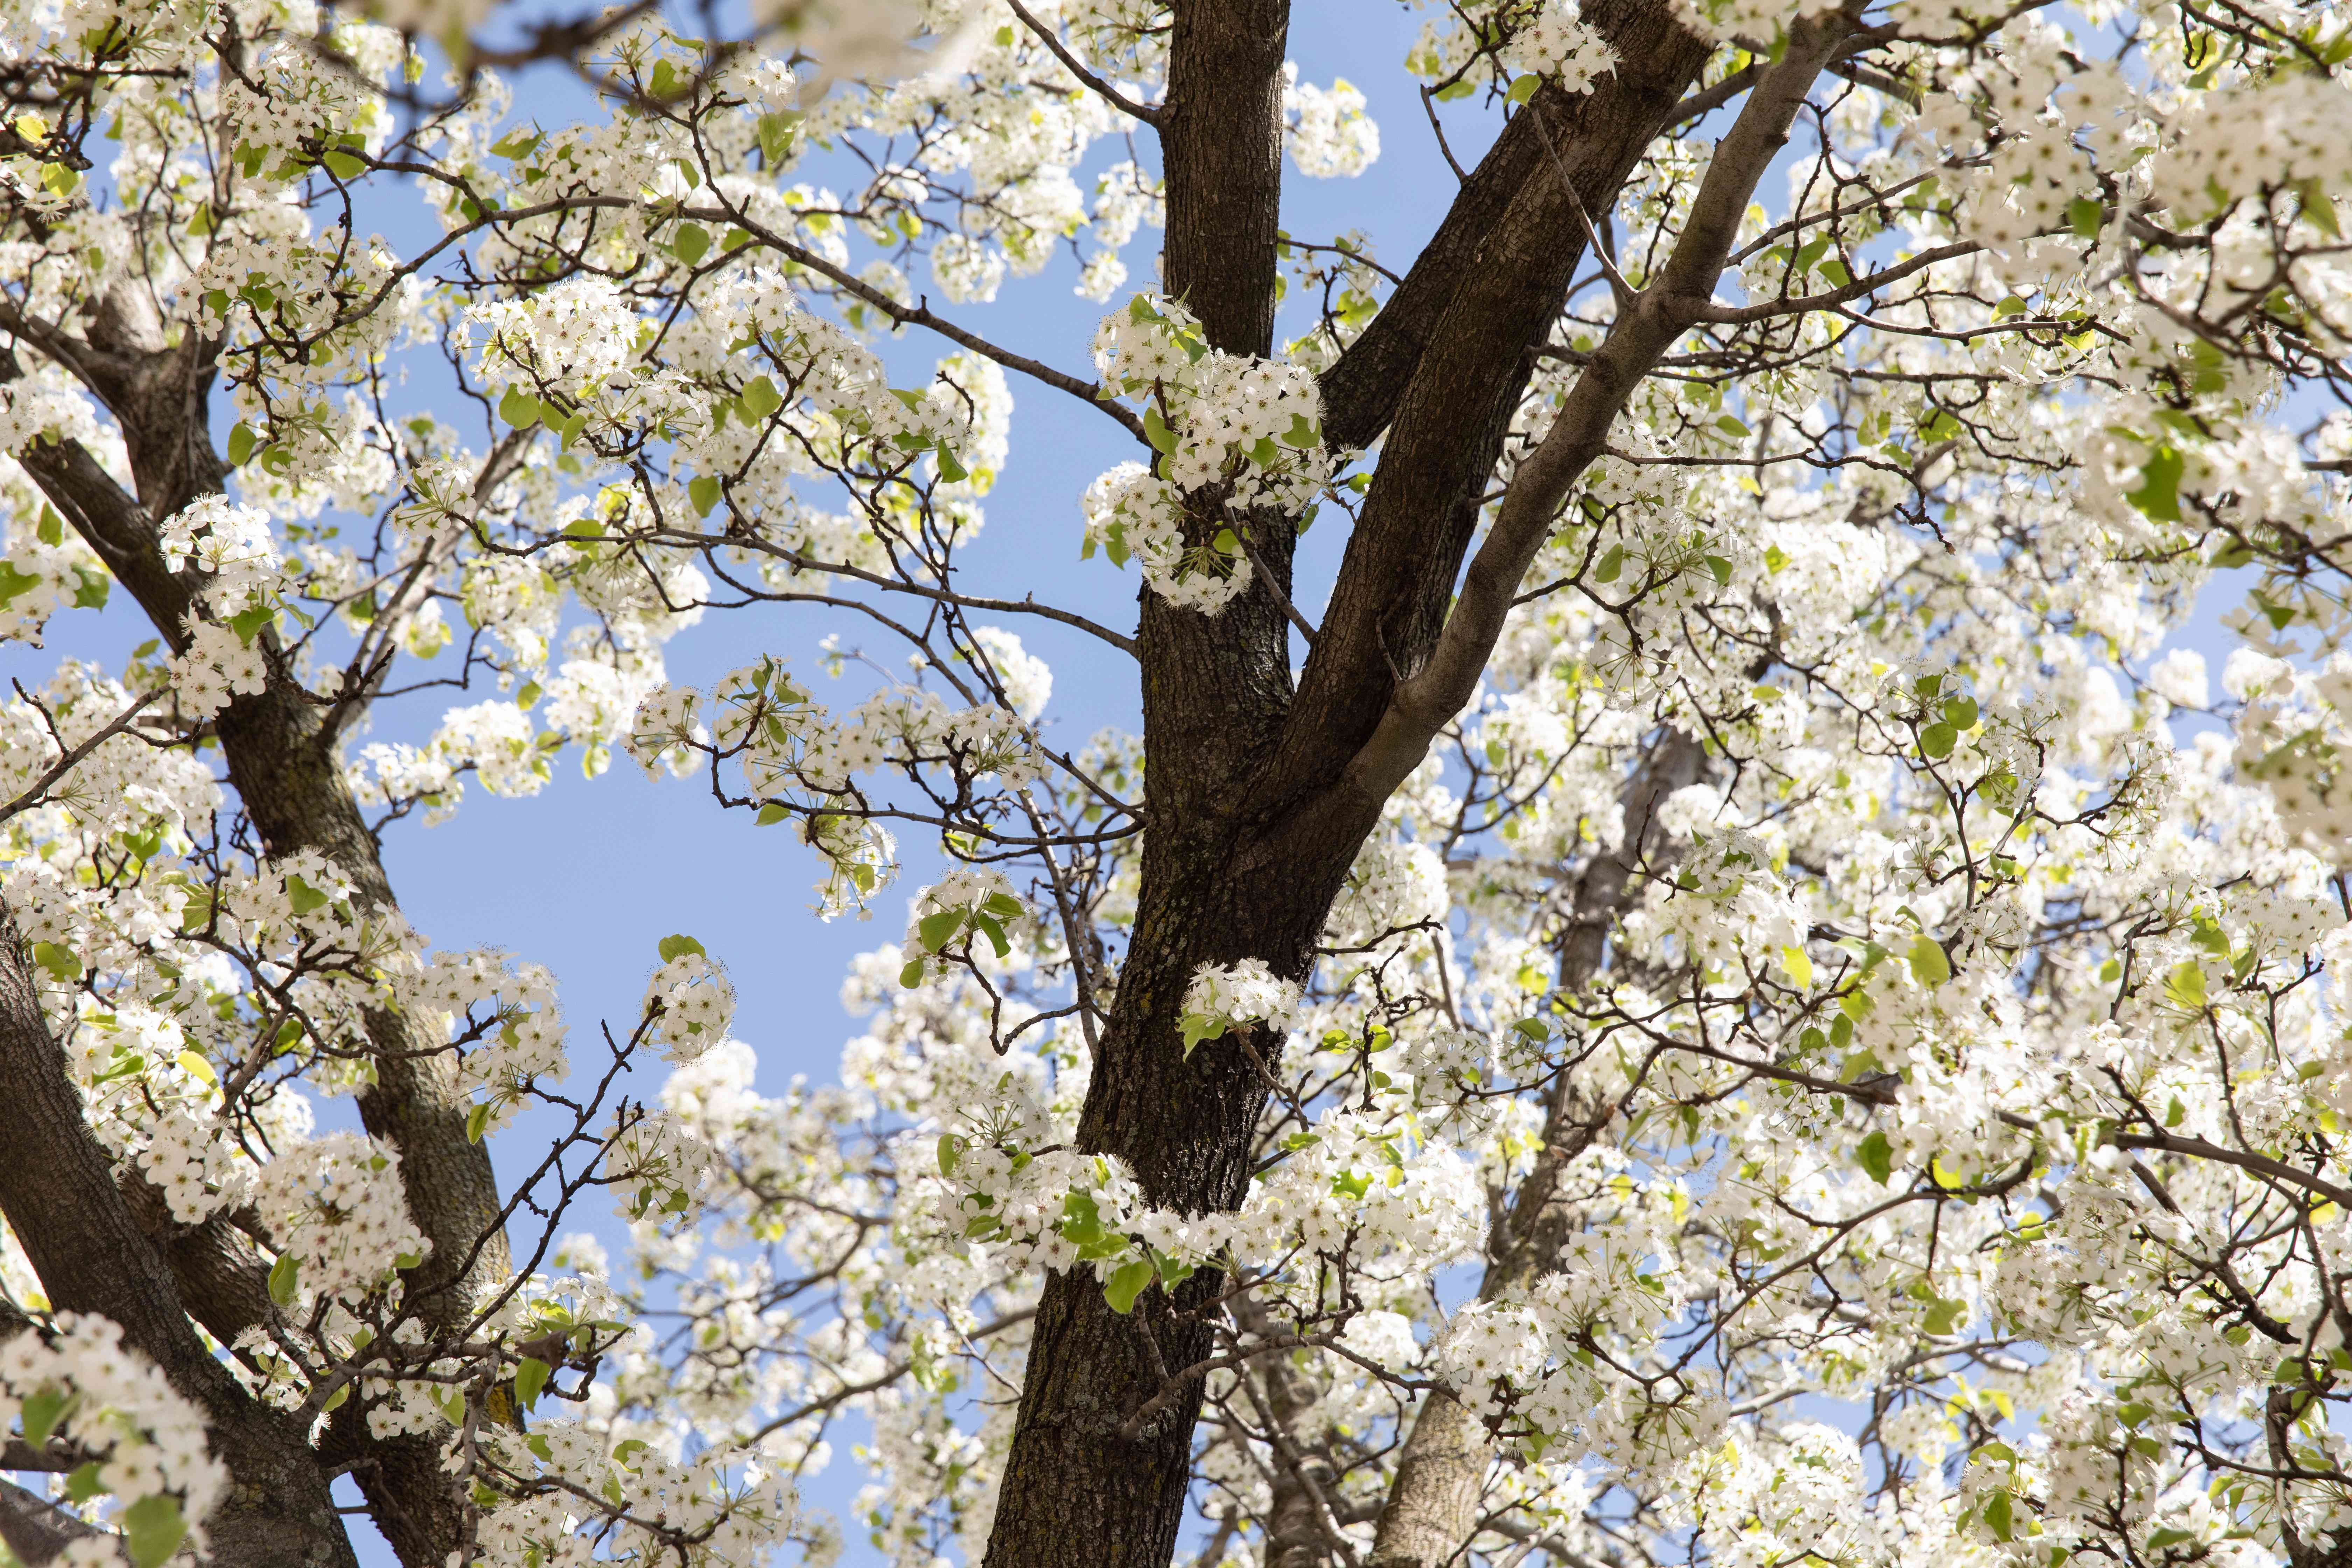 Calley pear tree trunk surrounded by white flower blossoms on branches